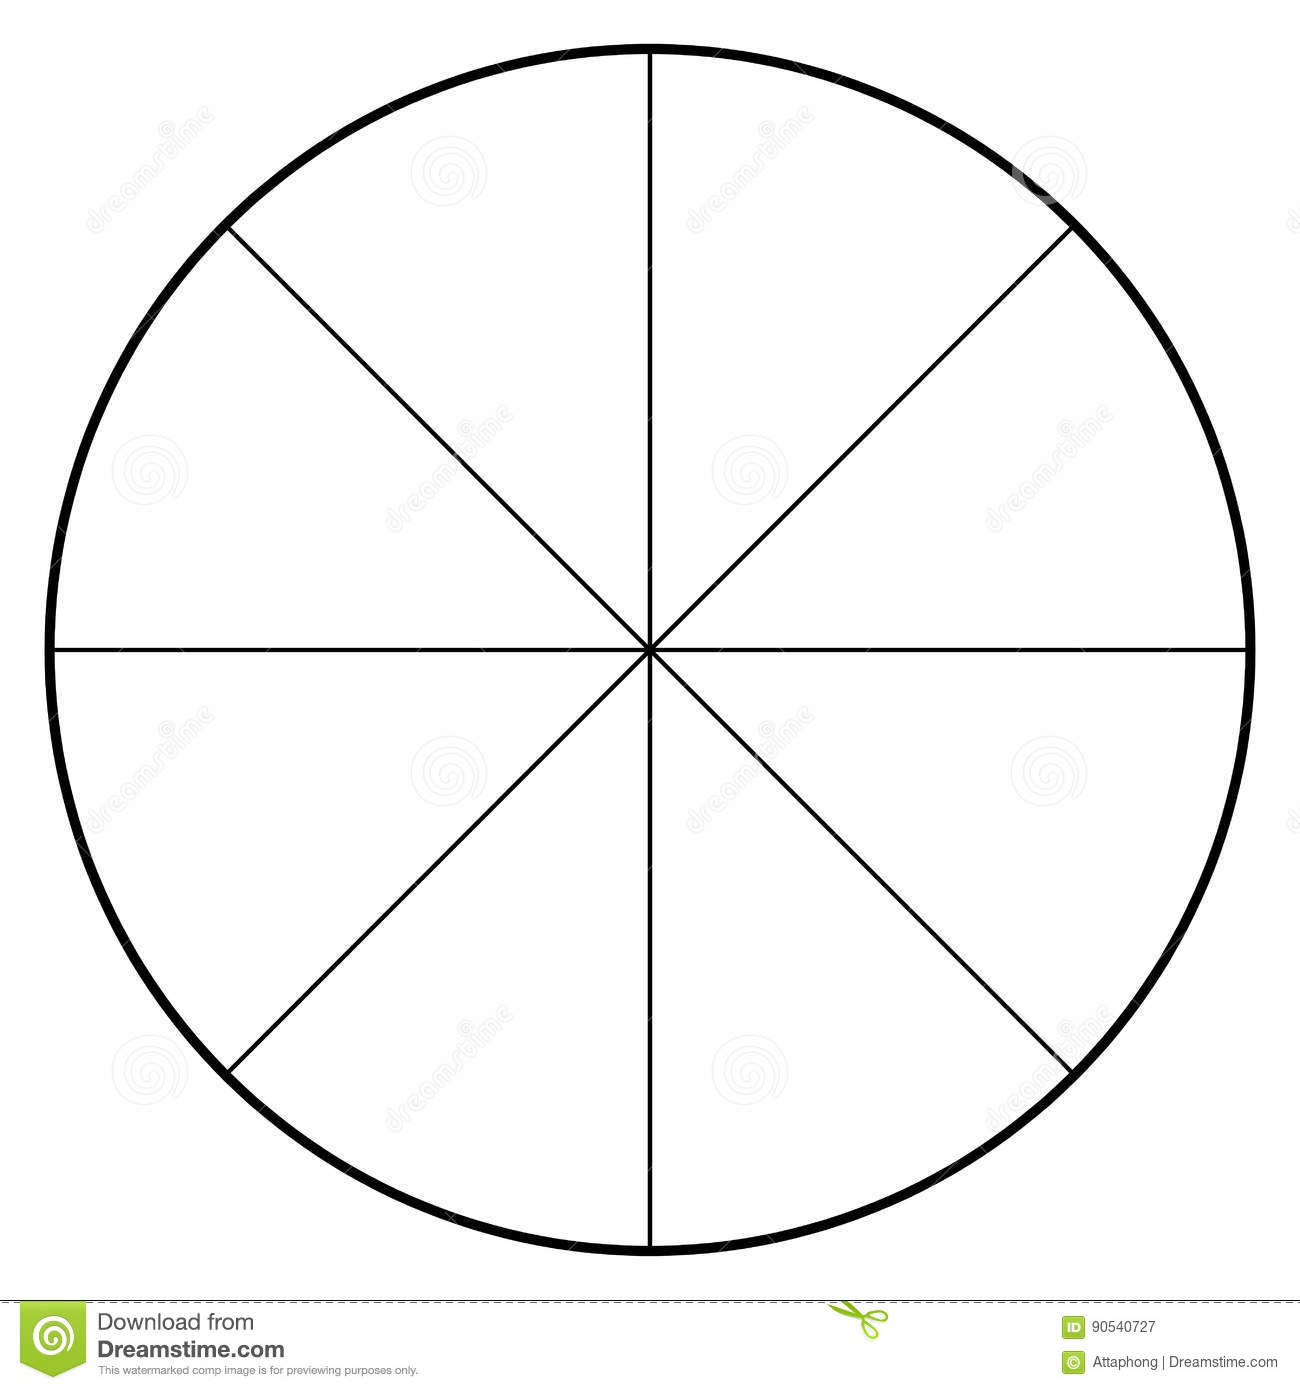 Blank Pie Chart 10 Sections